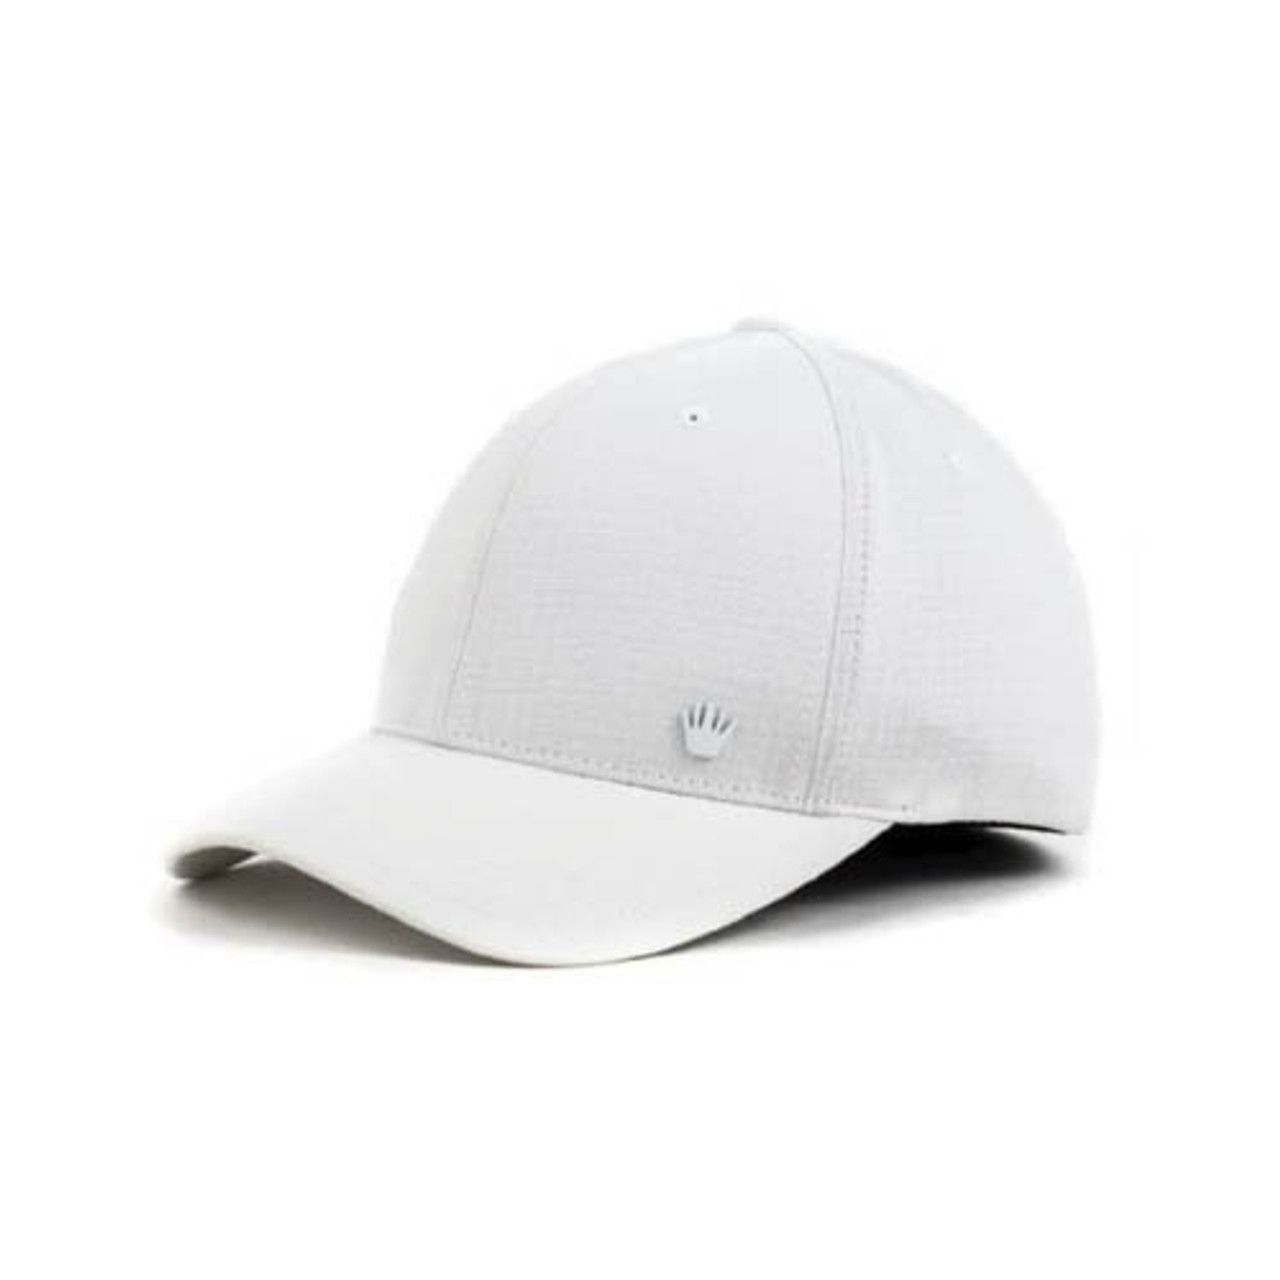 1509e1b7fbef52 No Bad Ideas - Flexfit Cap - Hampton (White)